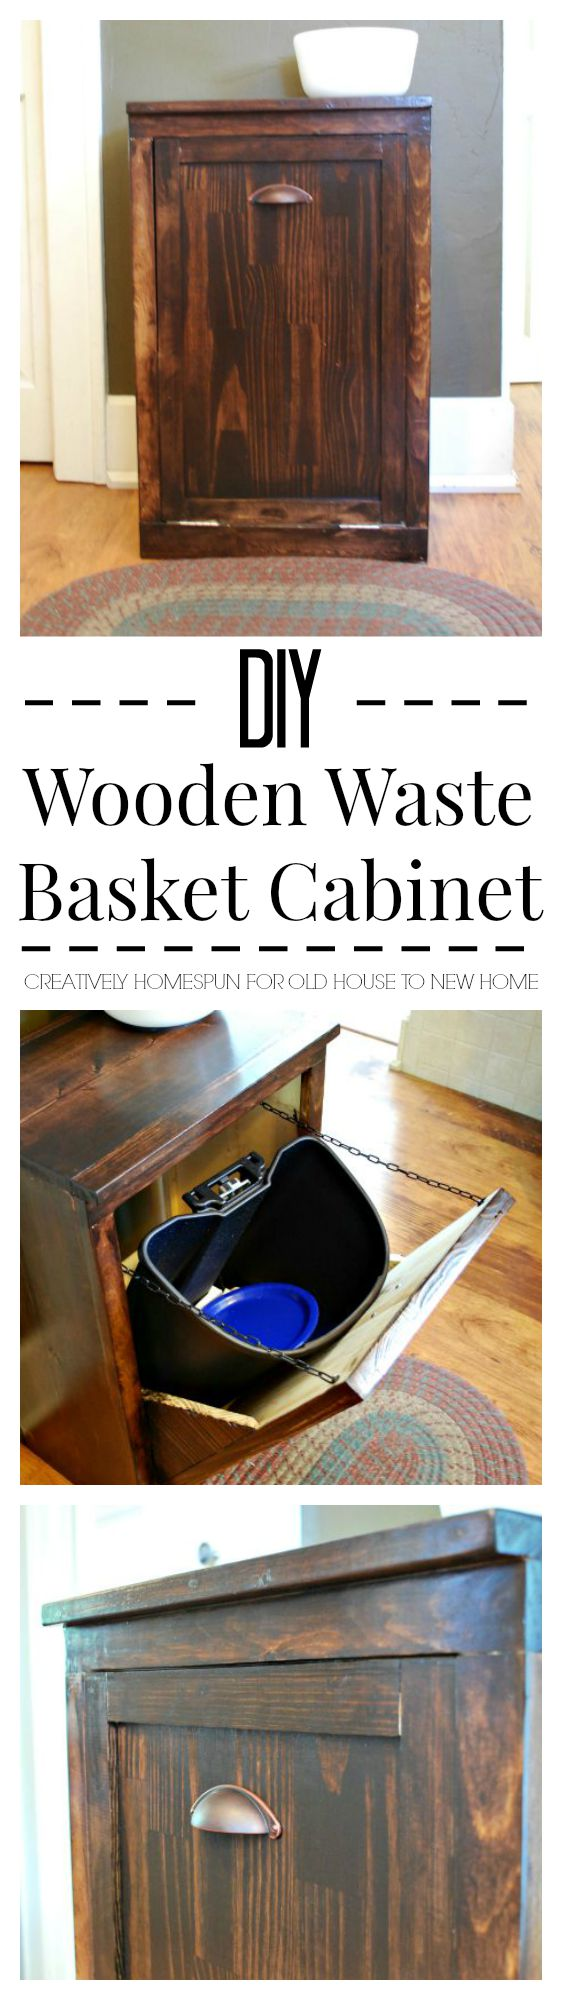 DIY Wooden Waste Basket Cabinet #diy #kitchendecor #diydecor